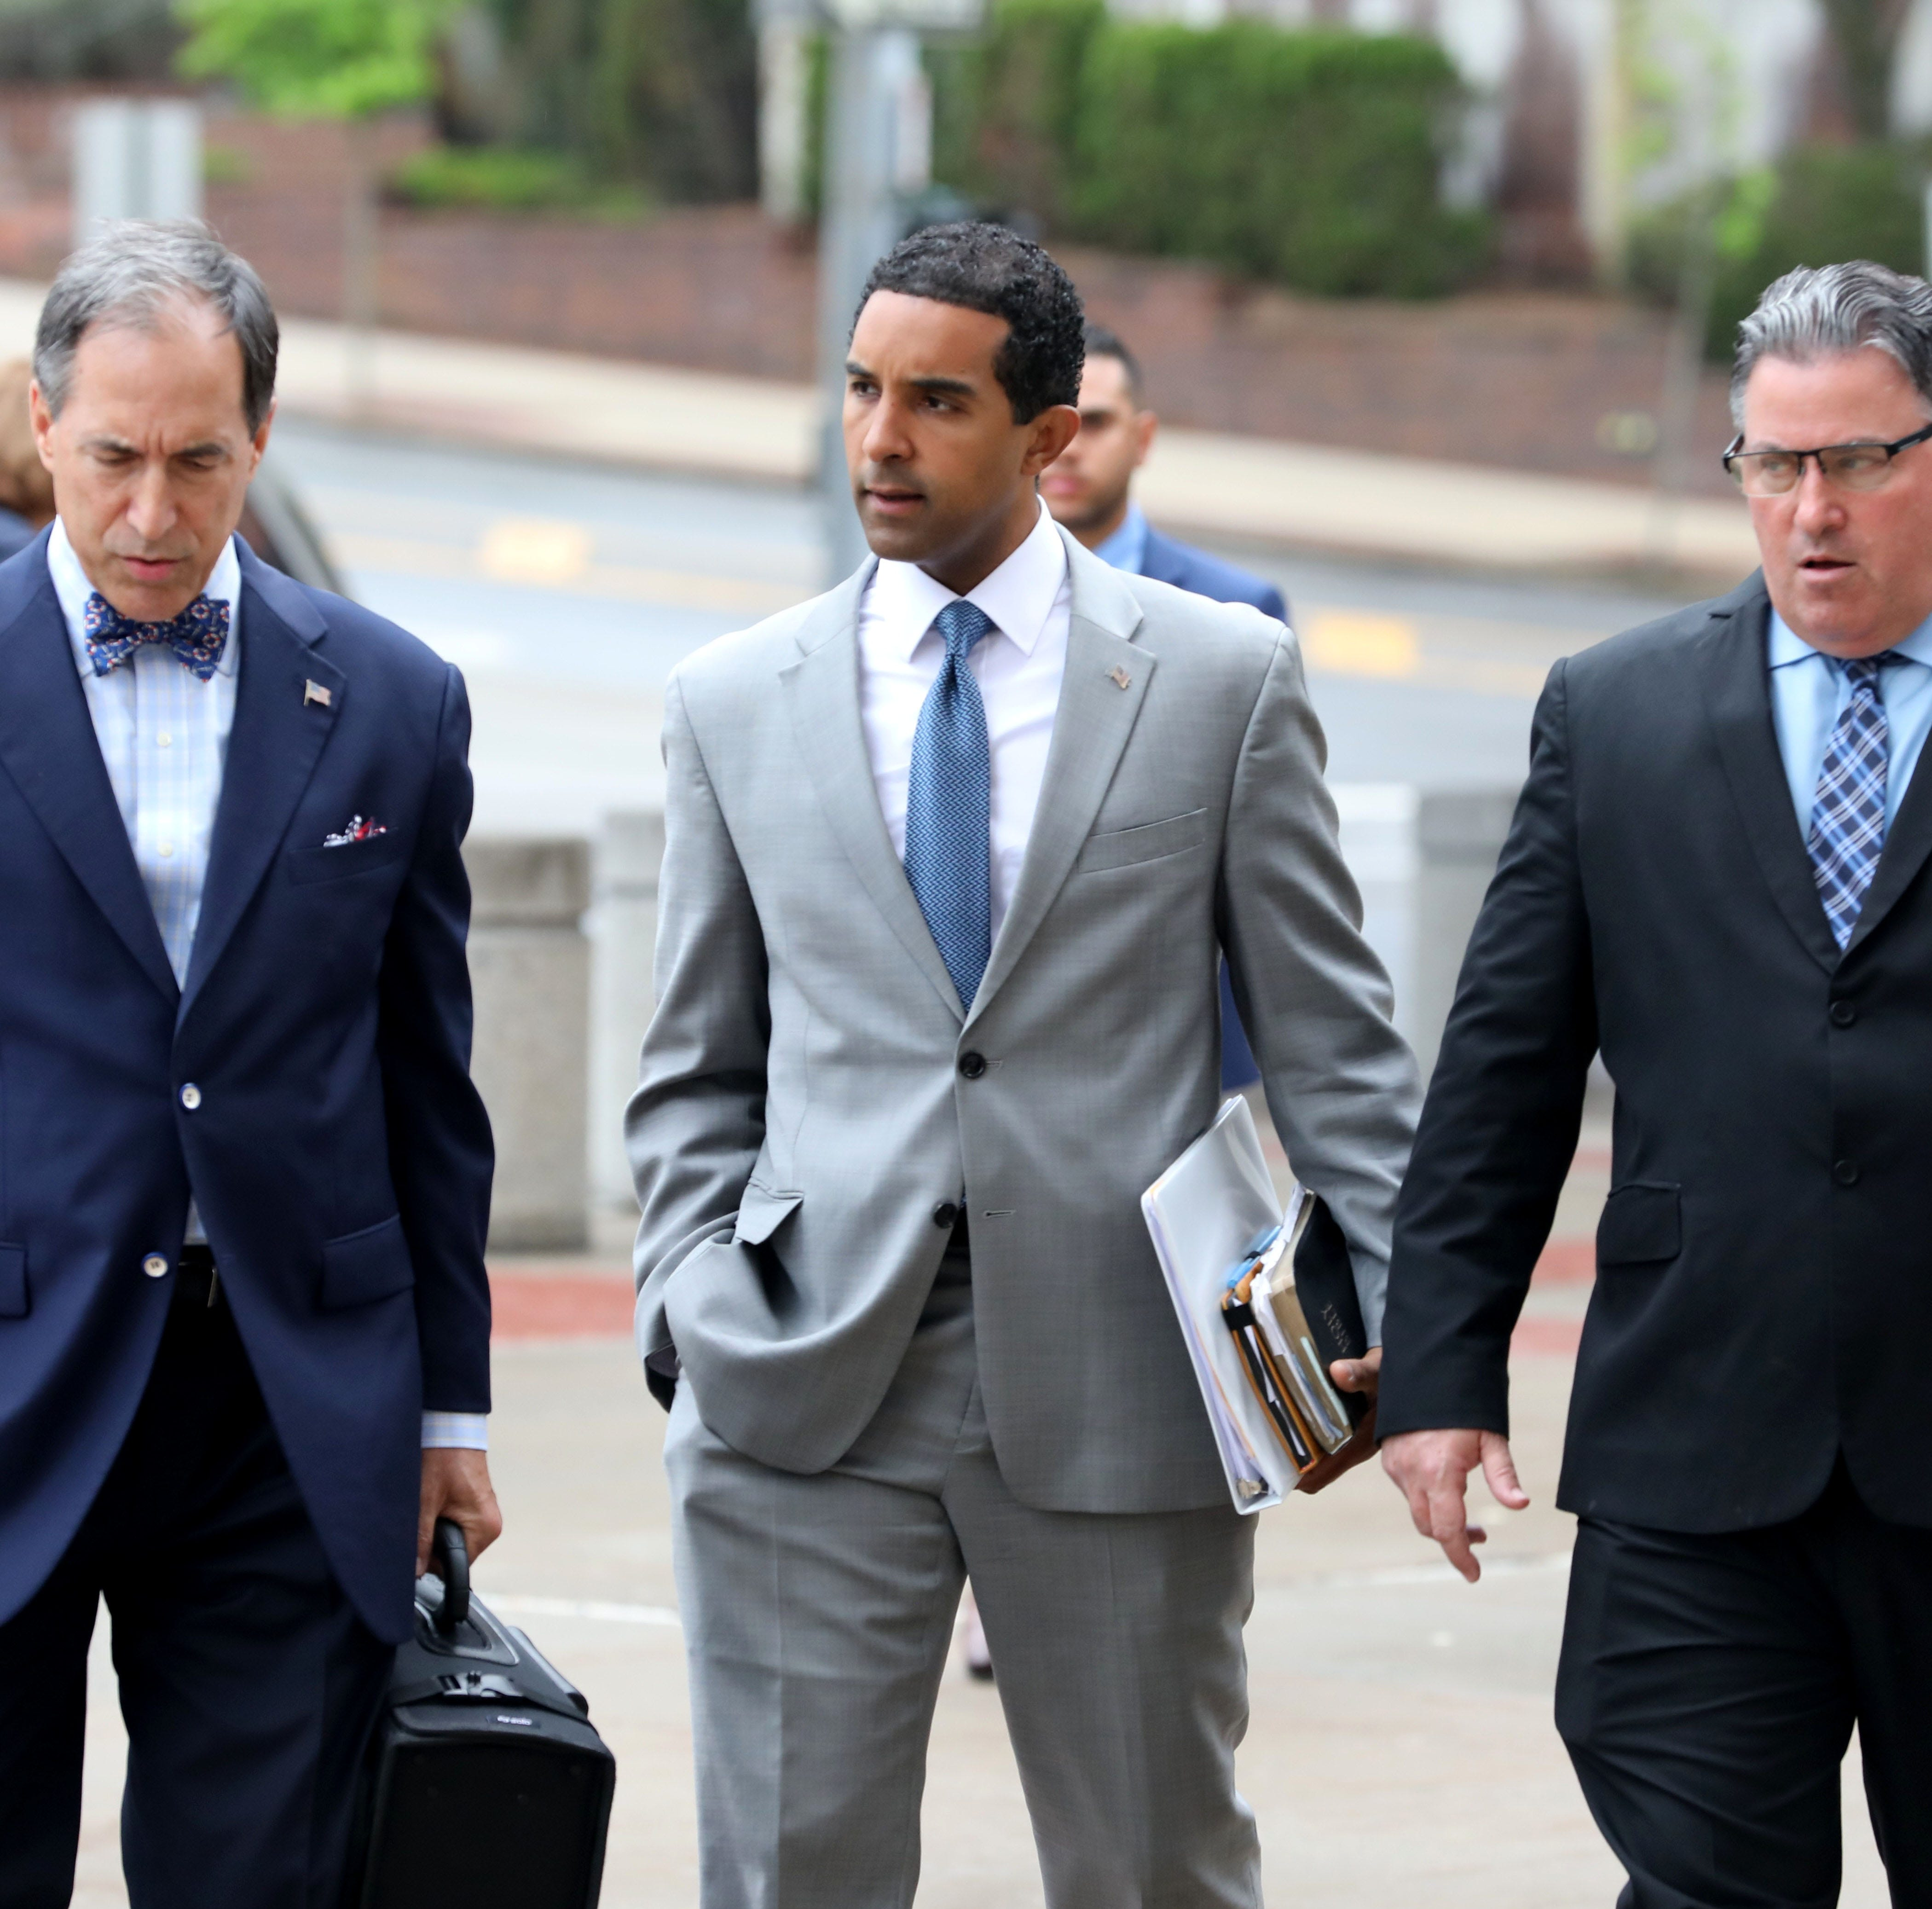 Mount Vernon Mayor Richard Thomas heading to trial after rejecting final plea offer